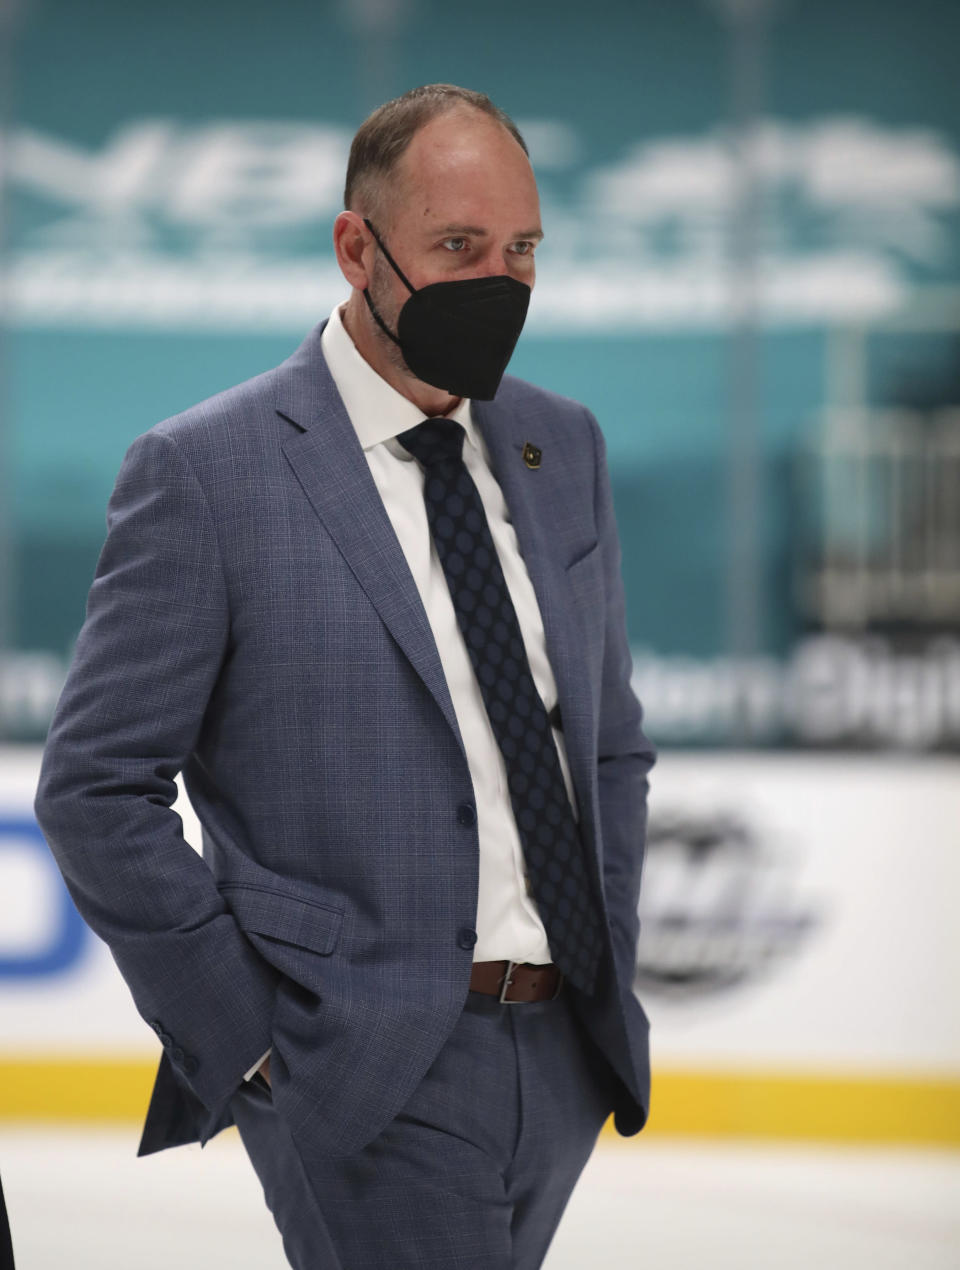 FILE - Vegas Golden Knights coach Peter DeBoer leaves the ice at the end of the first period during an NHL hockey game against the San Jose Sharks in San Jose, Calif., in this Saturday, Feb. 13, 2021, file photo. The four coaches left in the NHL playoffs have connections to each other, but they all took different paths to get to this point. (AP Photo/Josie Lepe, File)